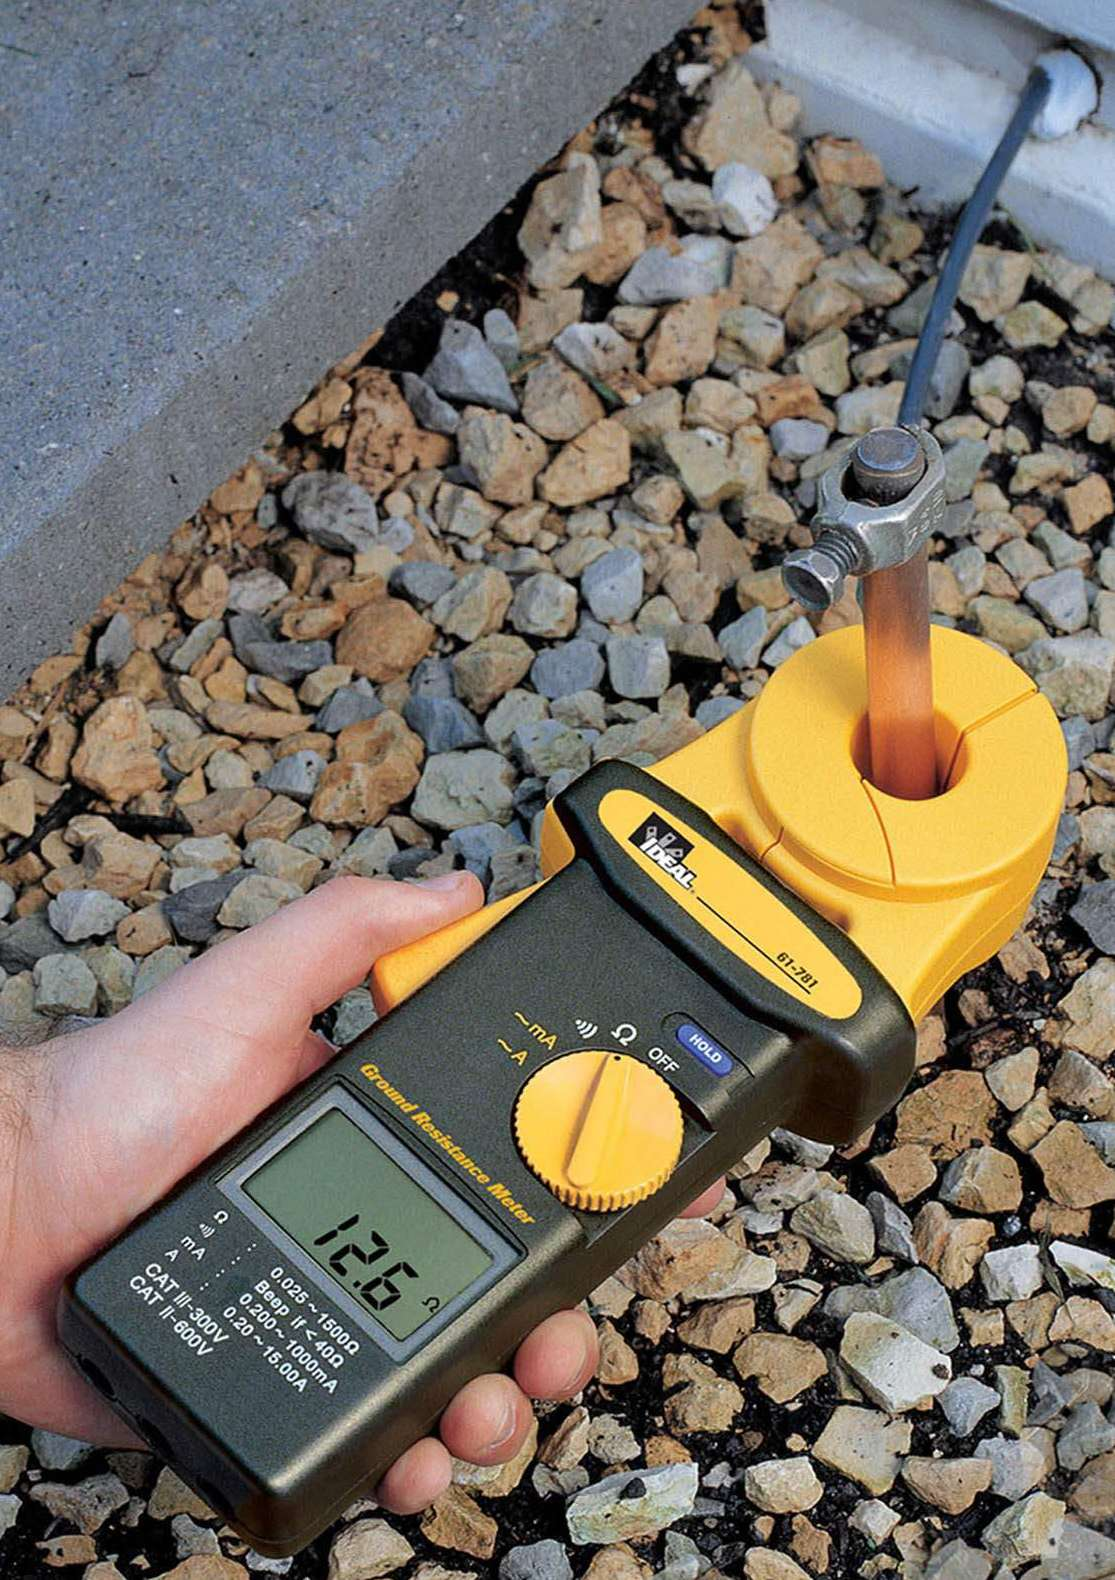 Ground Resistance Test : Ideal clamp enables readings of ground resistance without